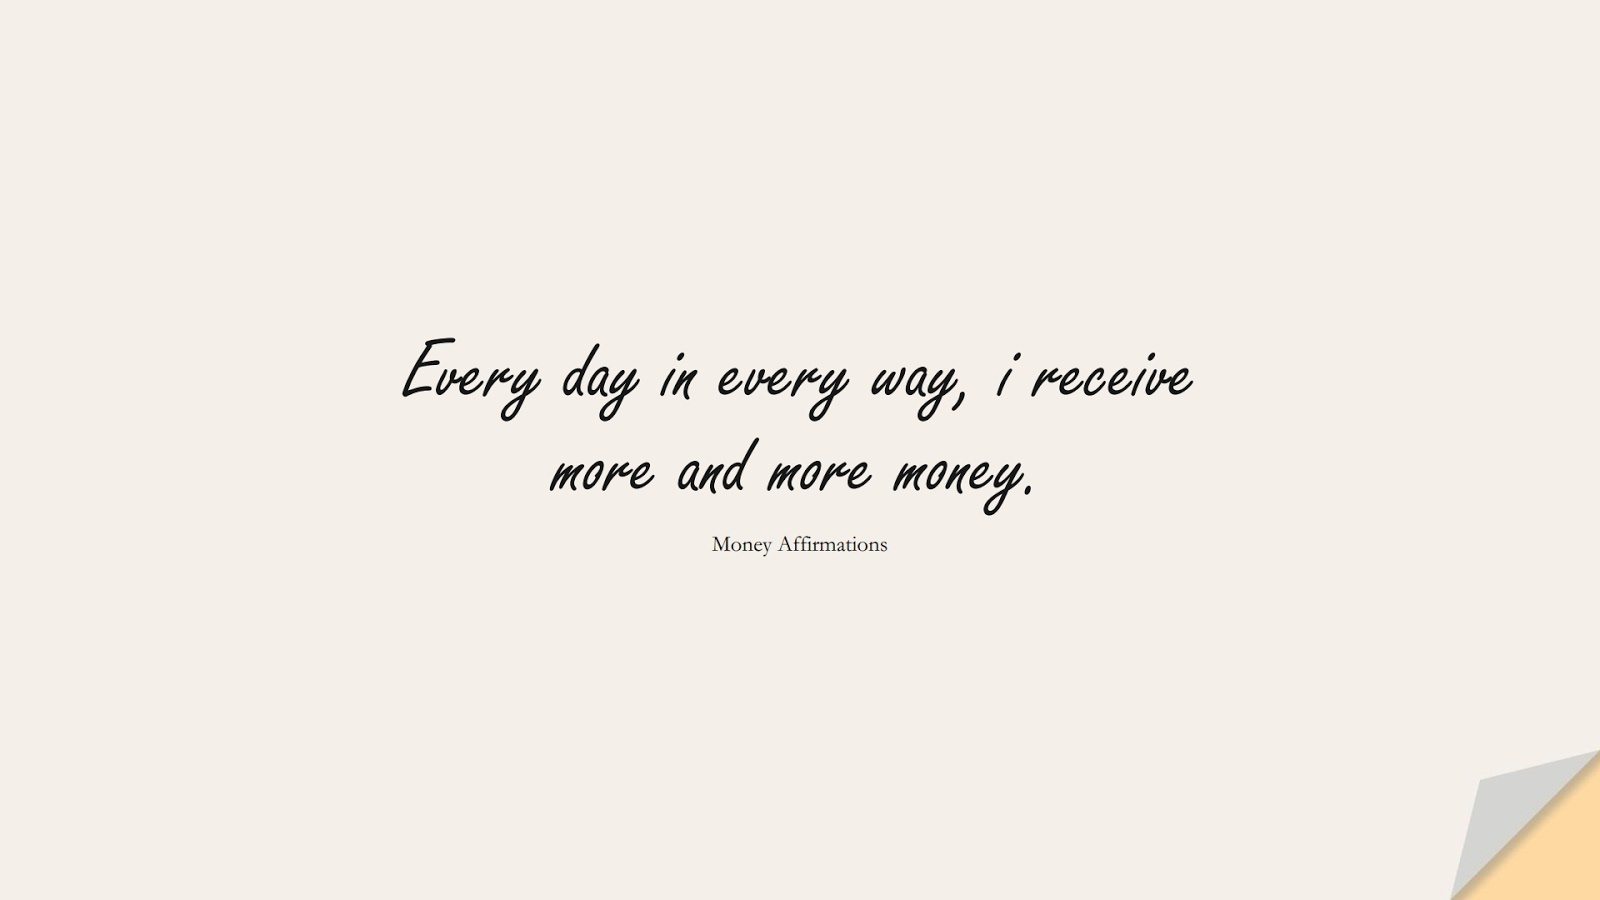 Every day in every way, i receive more and more money. (Money Affirmations);  #MoneyQuotes